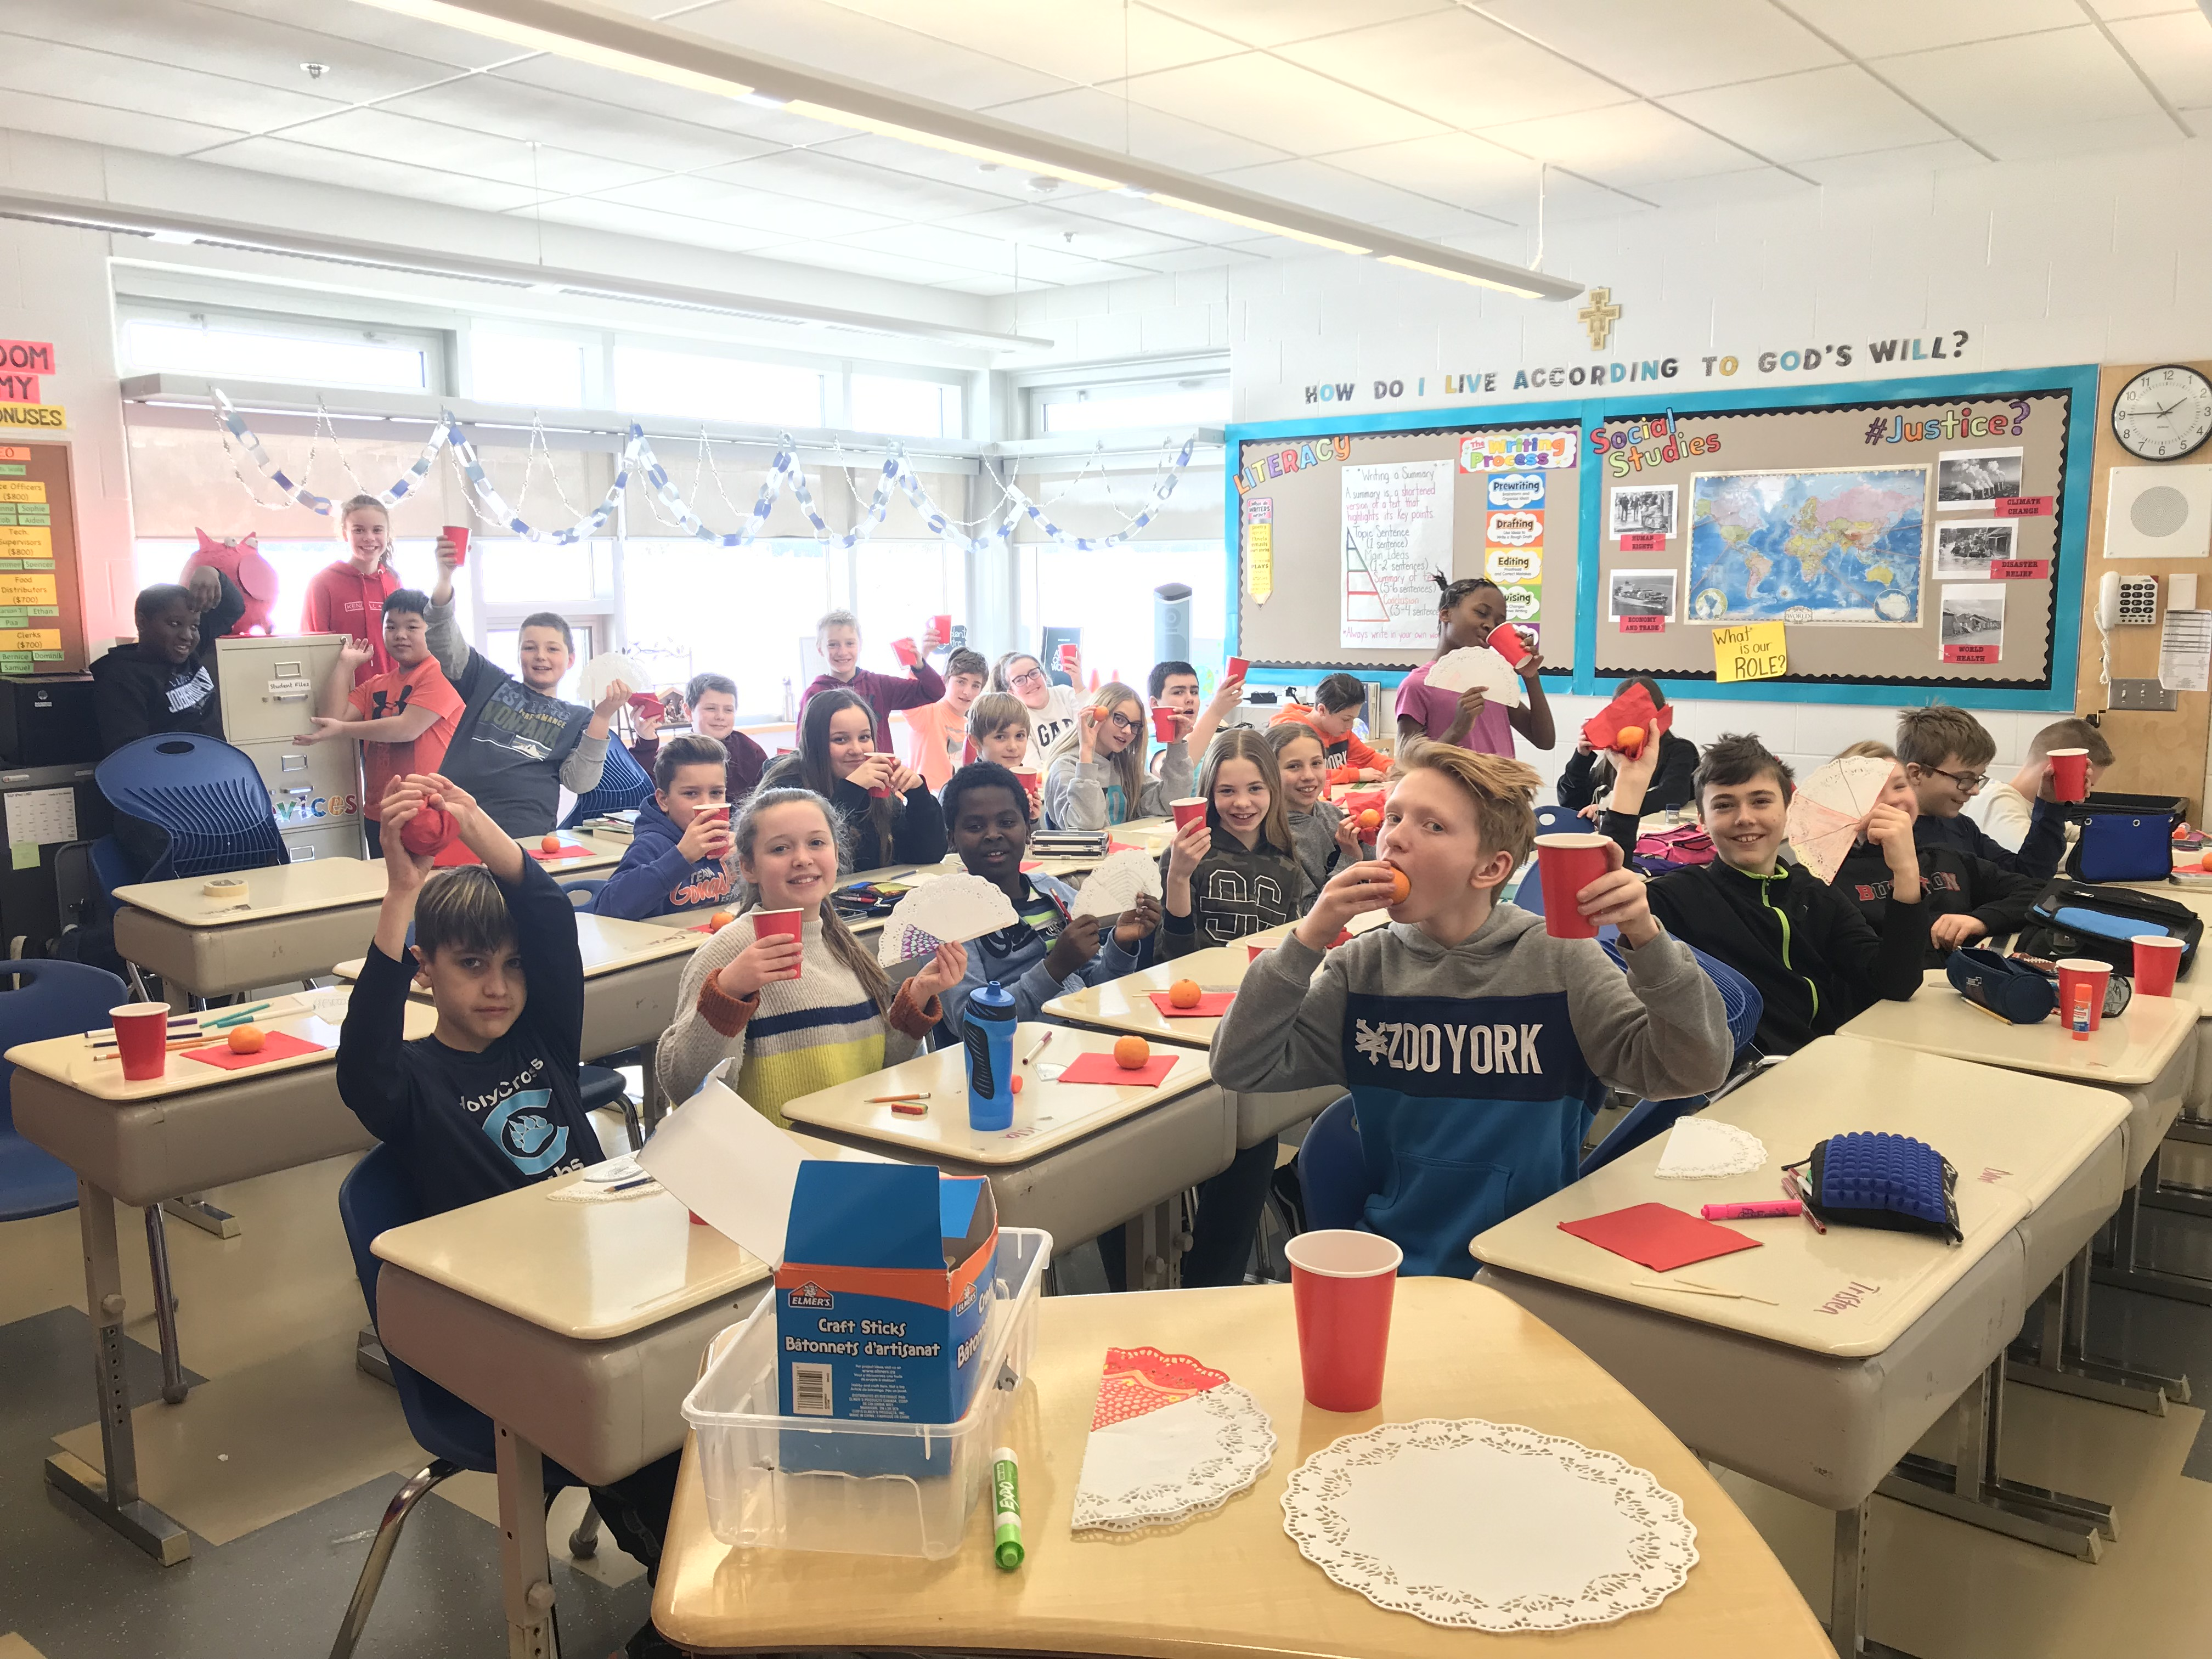 Grade 6 students at Holy Cross School raise their hands in celebration of Chinese New Year!